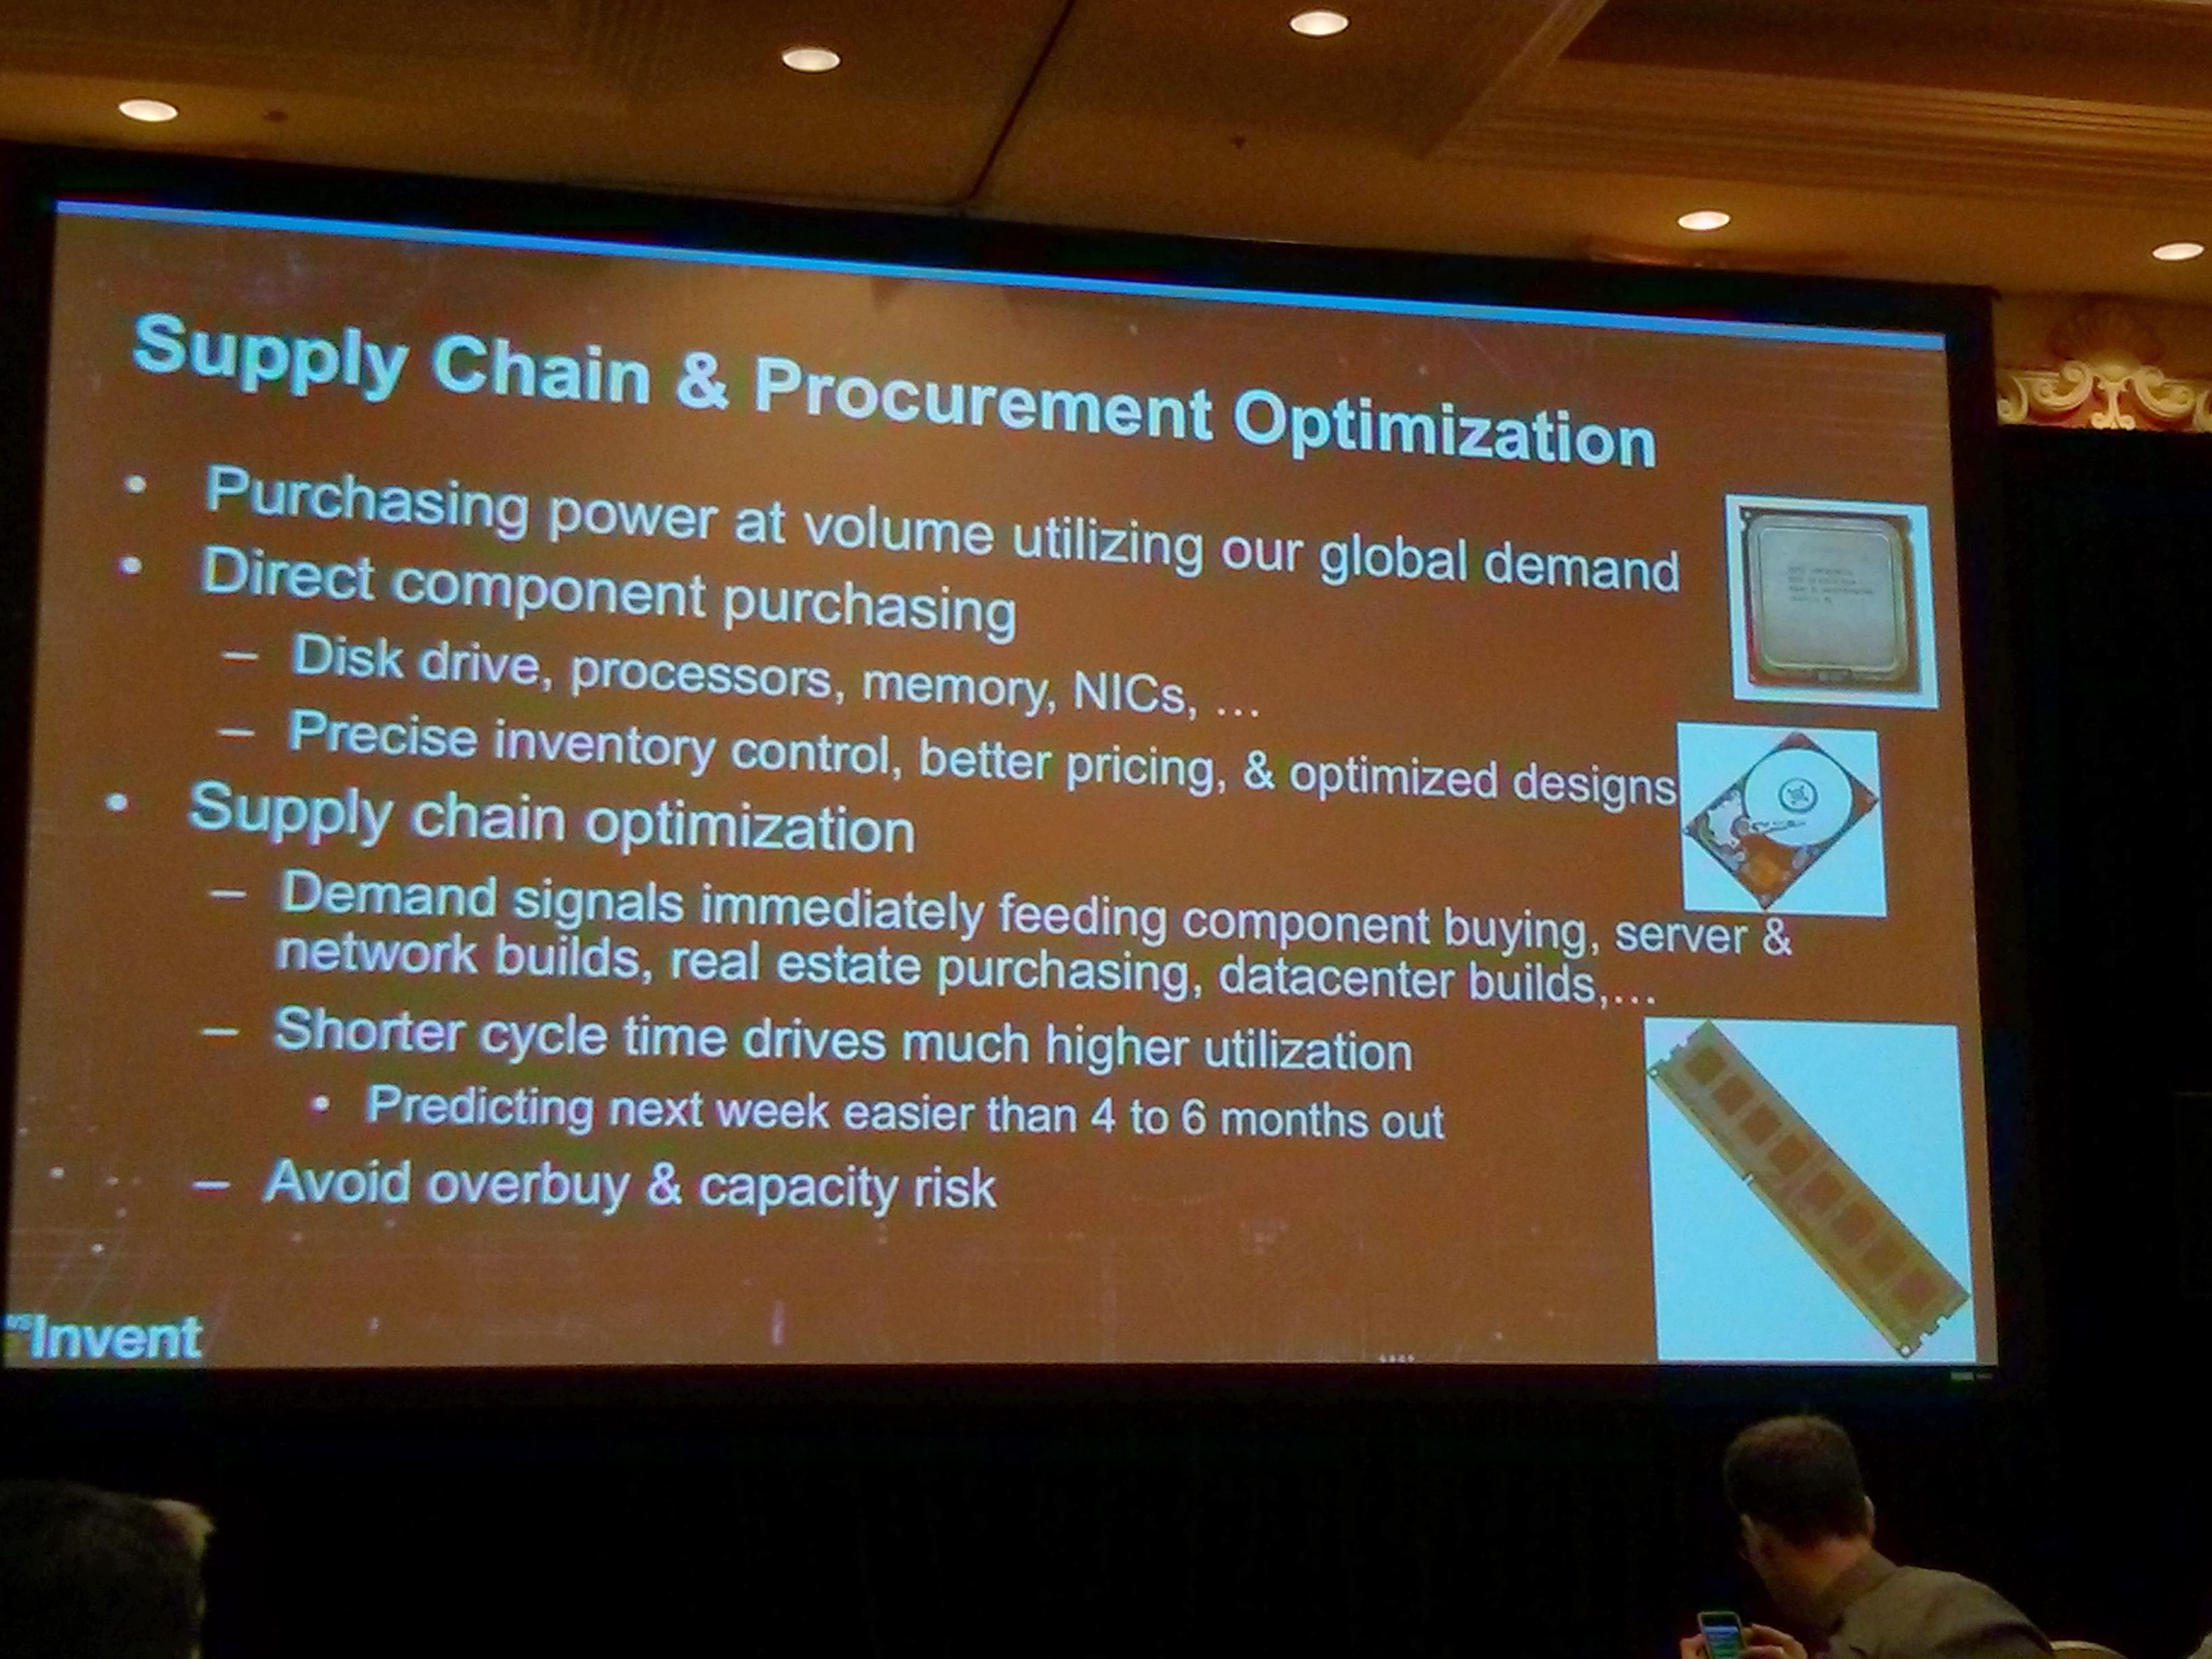 For when demand starts adding up, tracks and automates its supply chain.